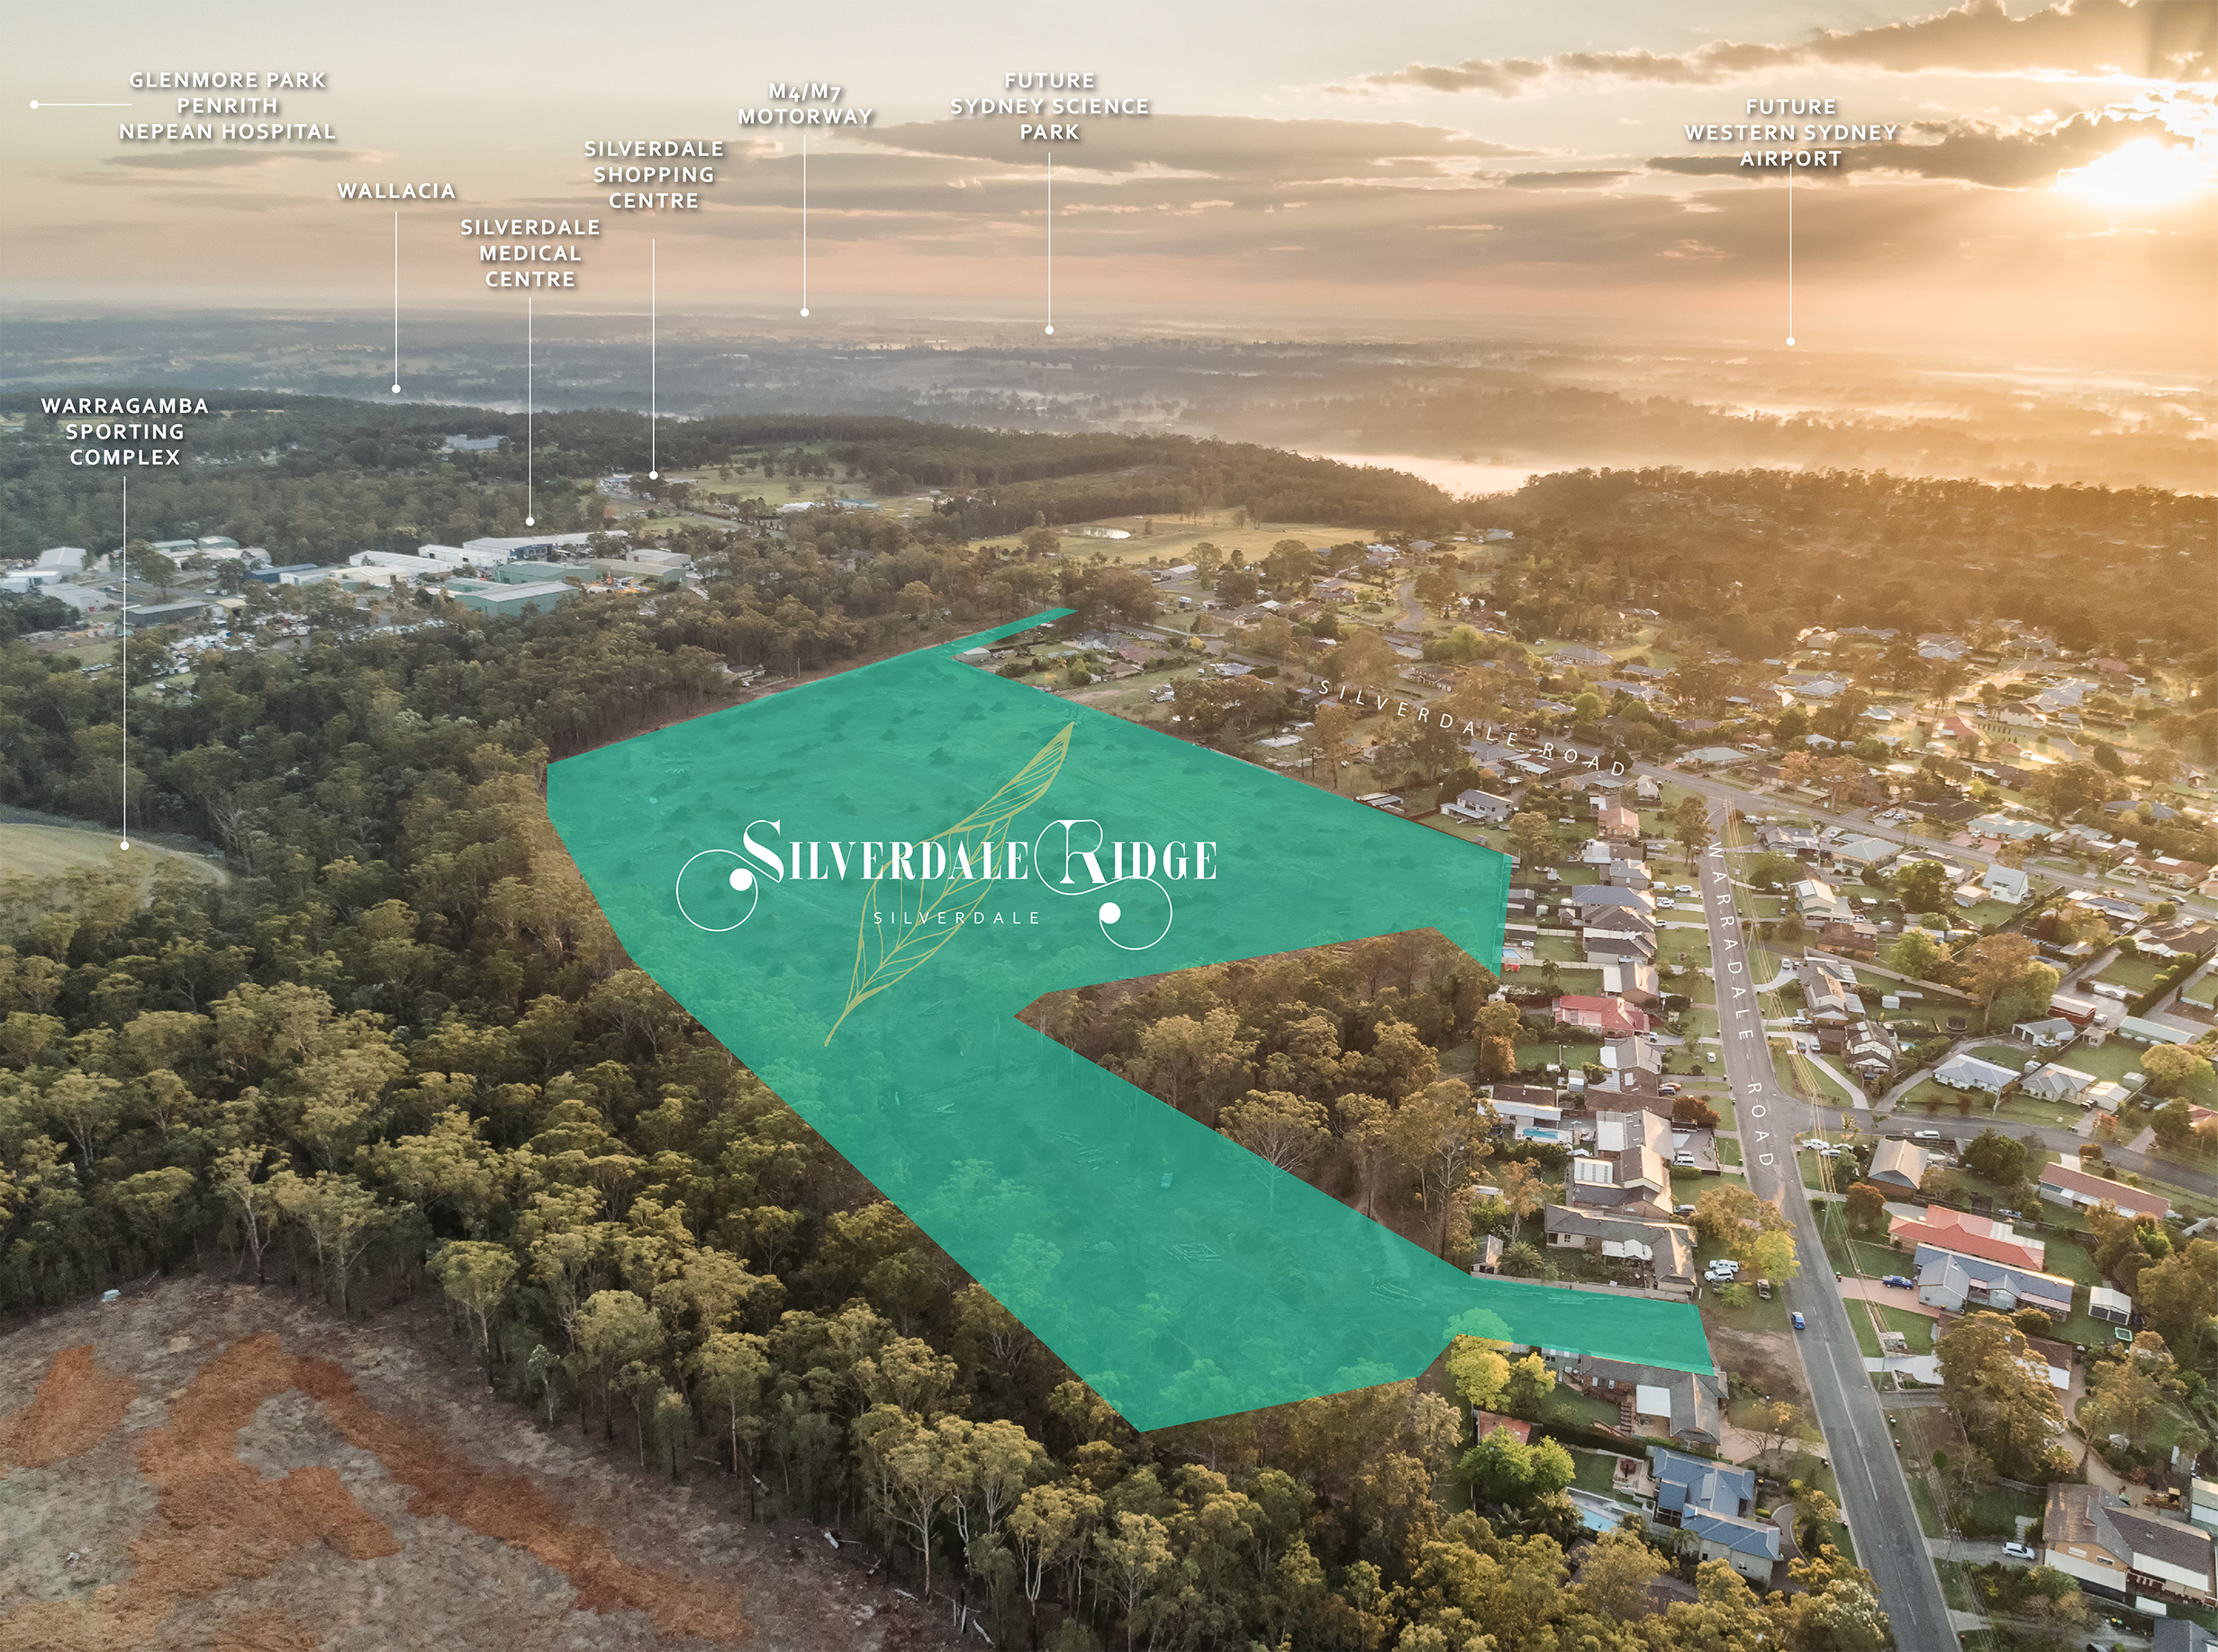 Large Residential Land Lots Offering a Tranquil & Laid Back Lifestyle